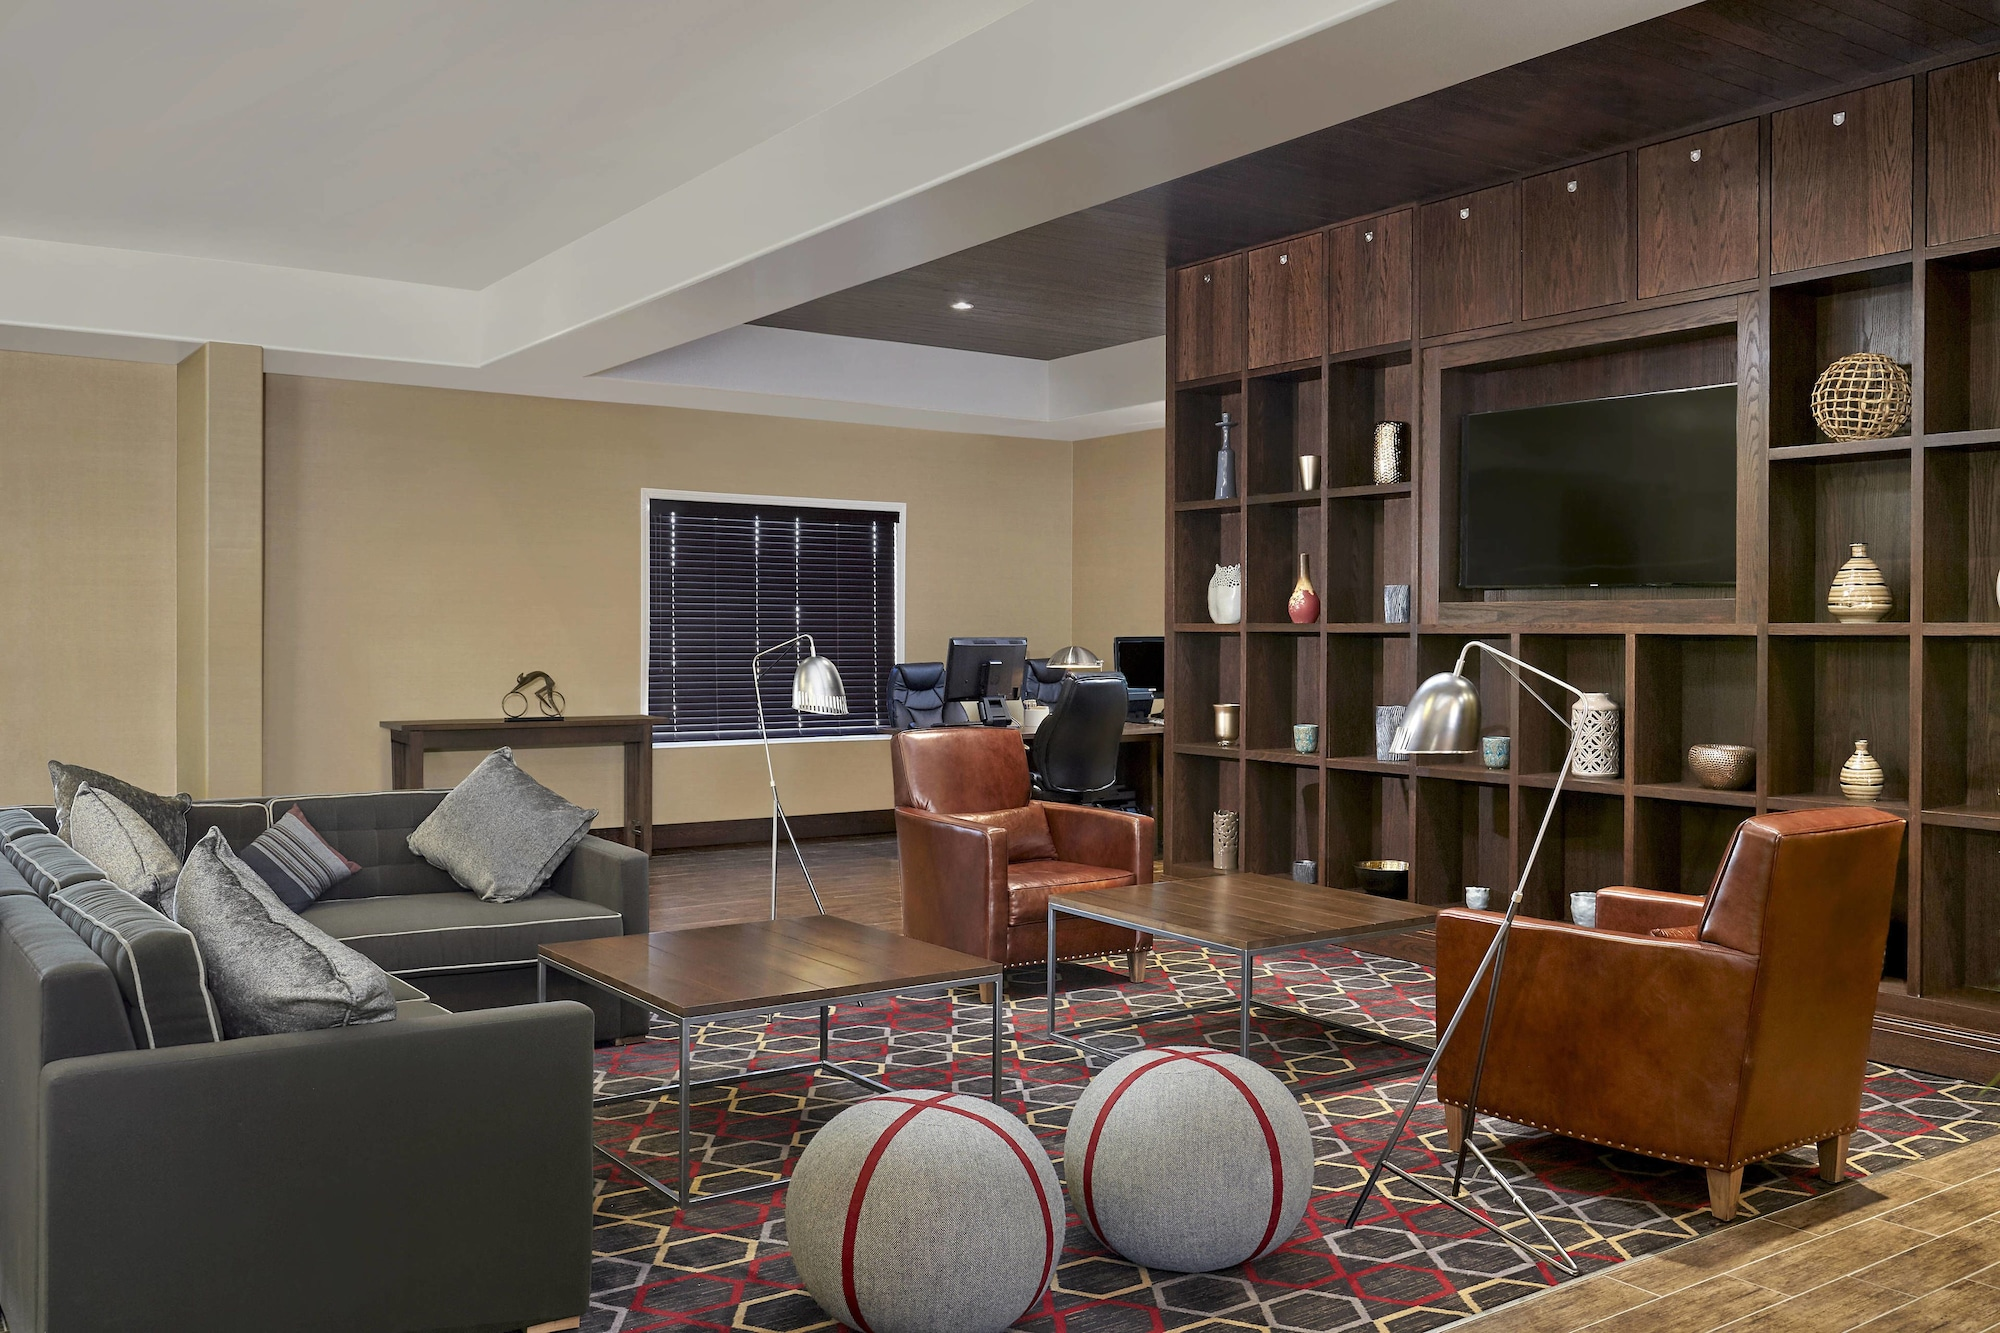 Four Points By Sheraton Regina, Division No. 6